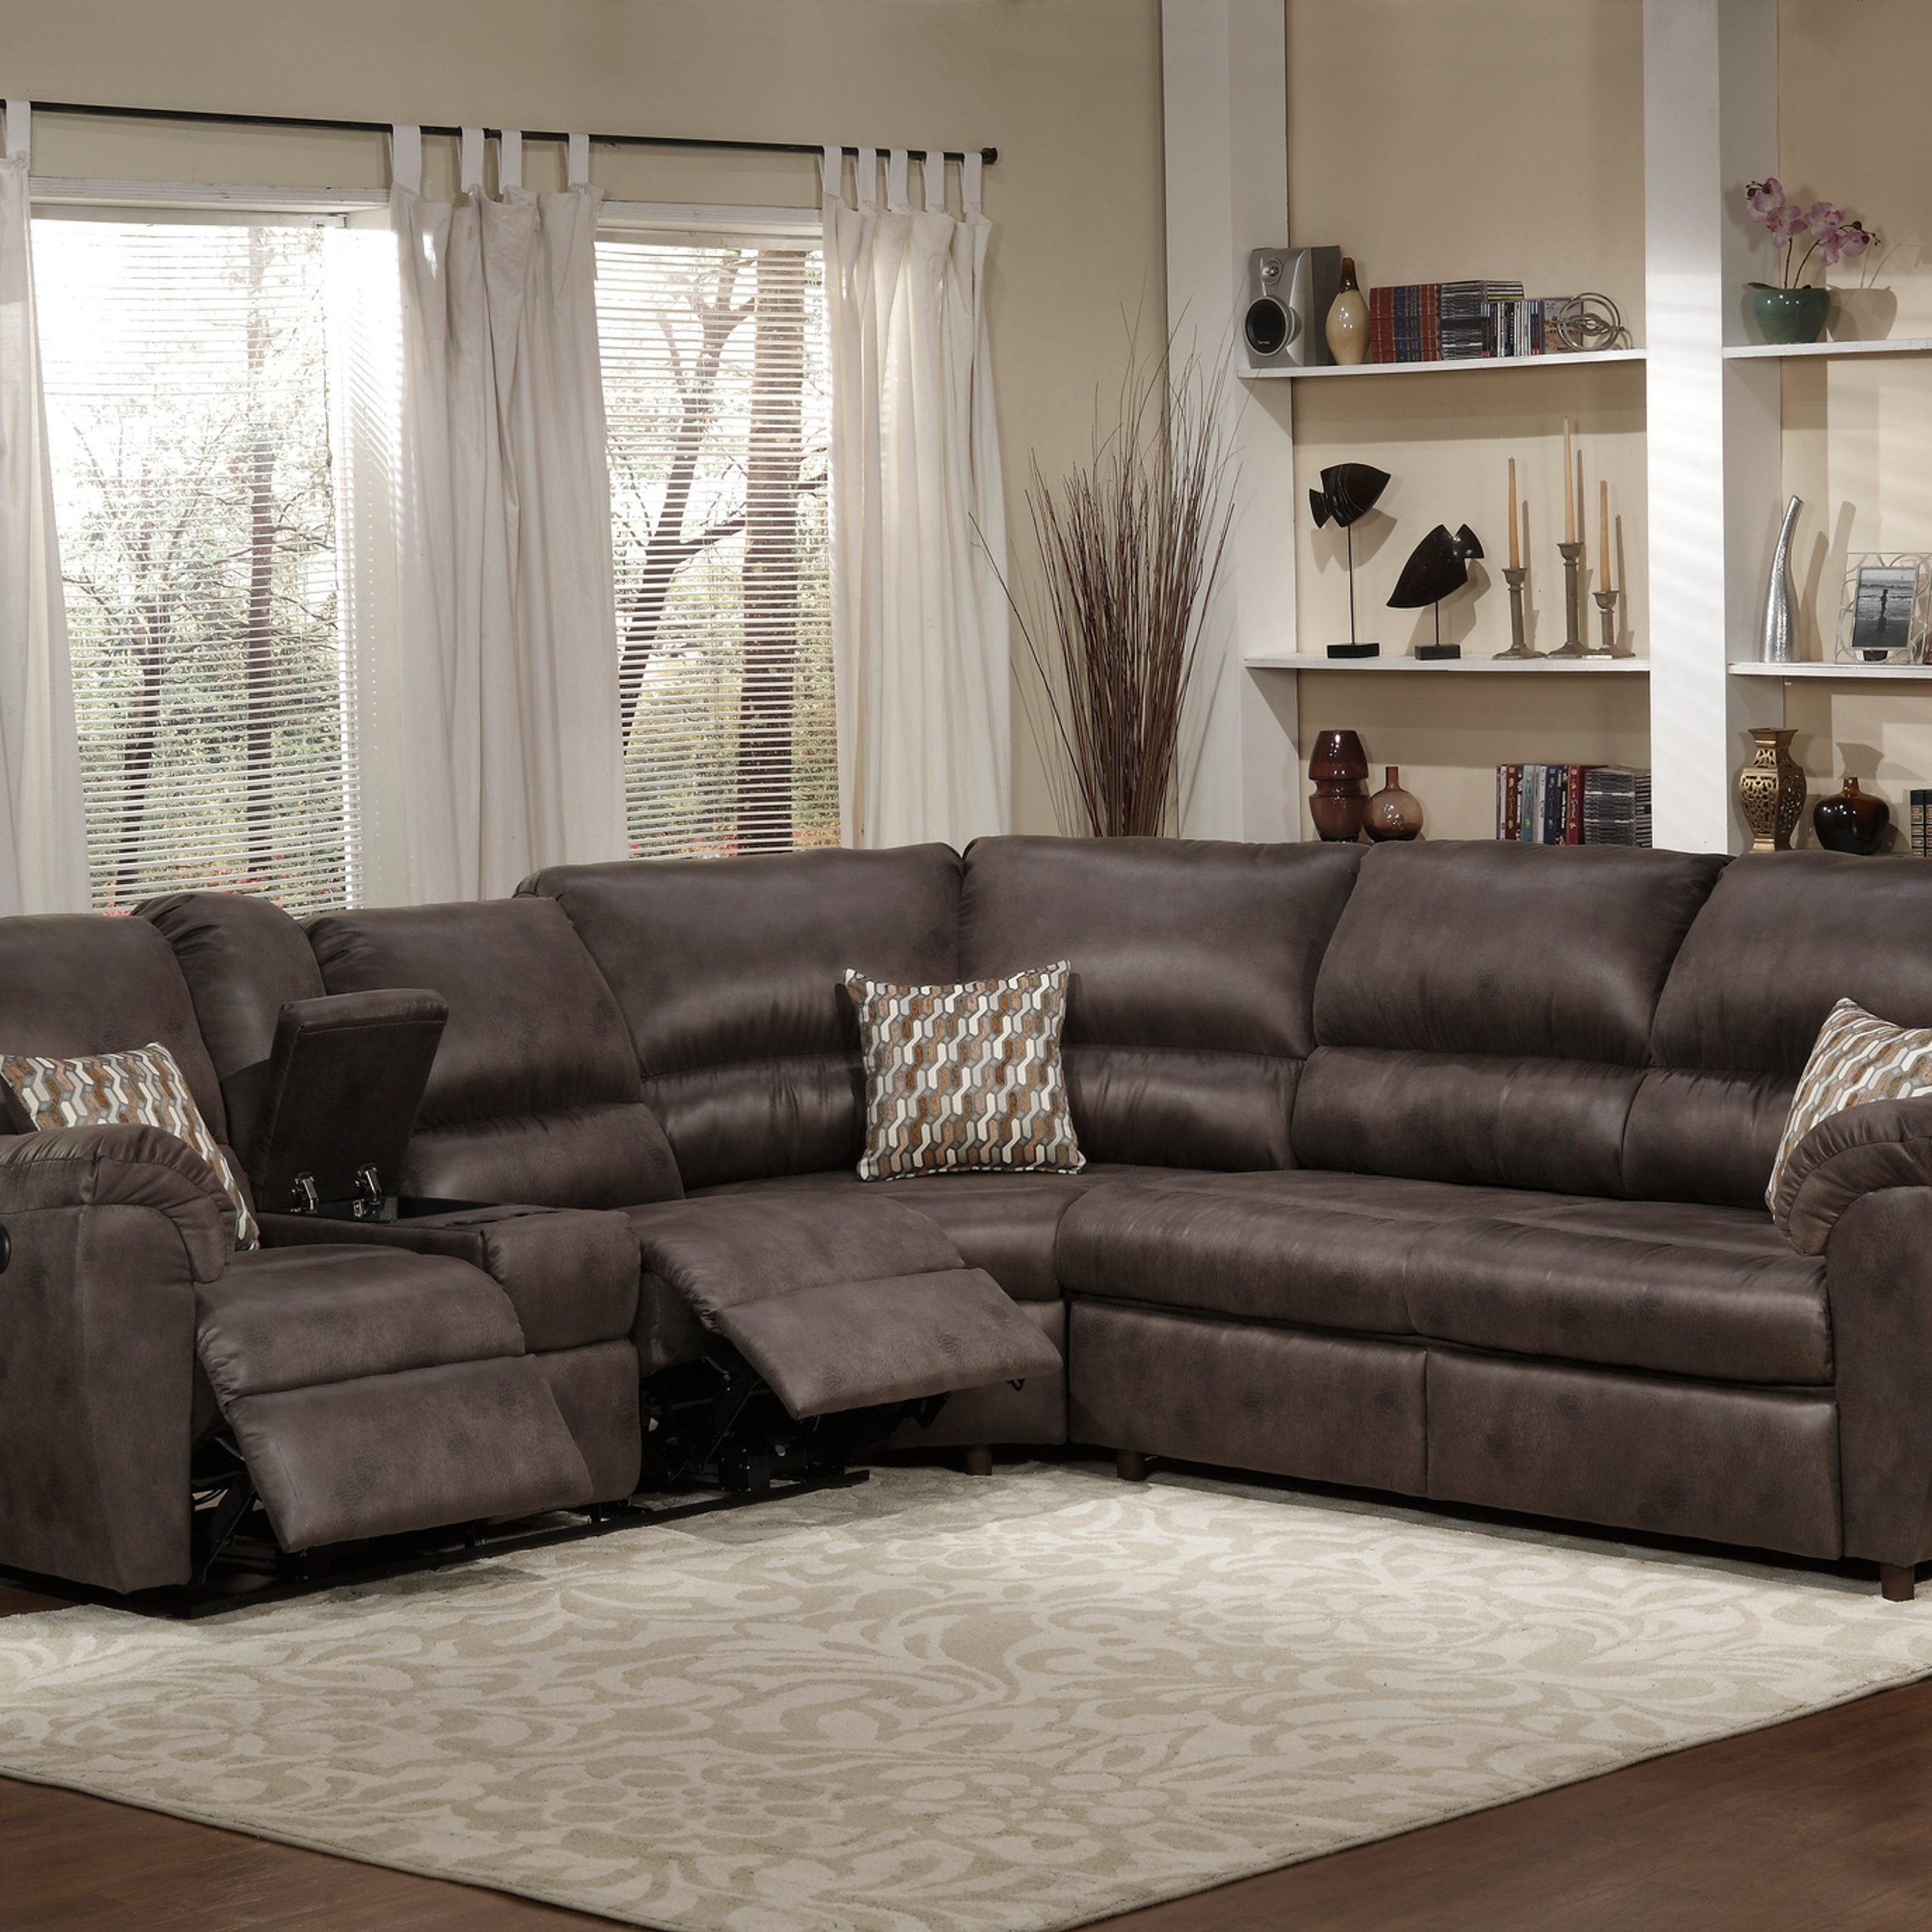 Sleeper Sectional   Instylefurniture Inc Within Felton Modern Style Pullout Sleeper Sofas Black (View 15 of 15)